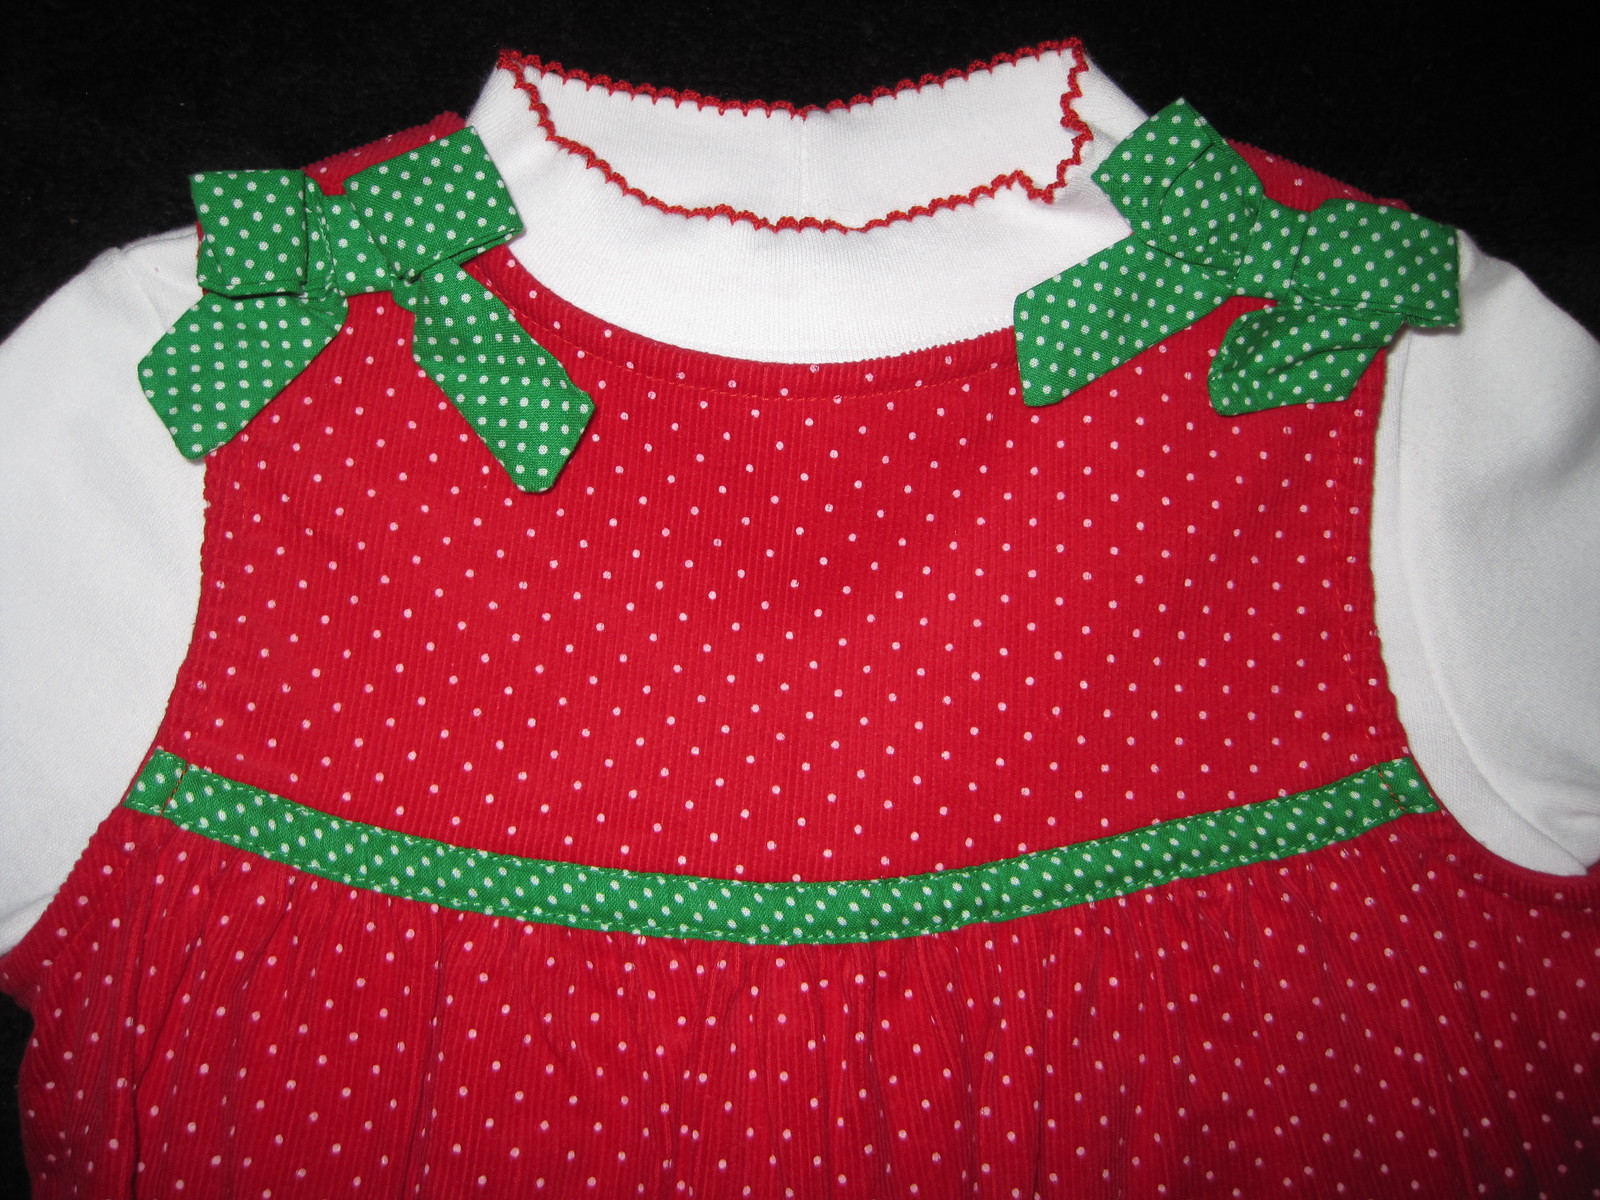 GIRLS 4T - Rare Too -  Candy Canes on Red Corduroy HOLIDAY JUMPER SET image 5